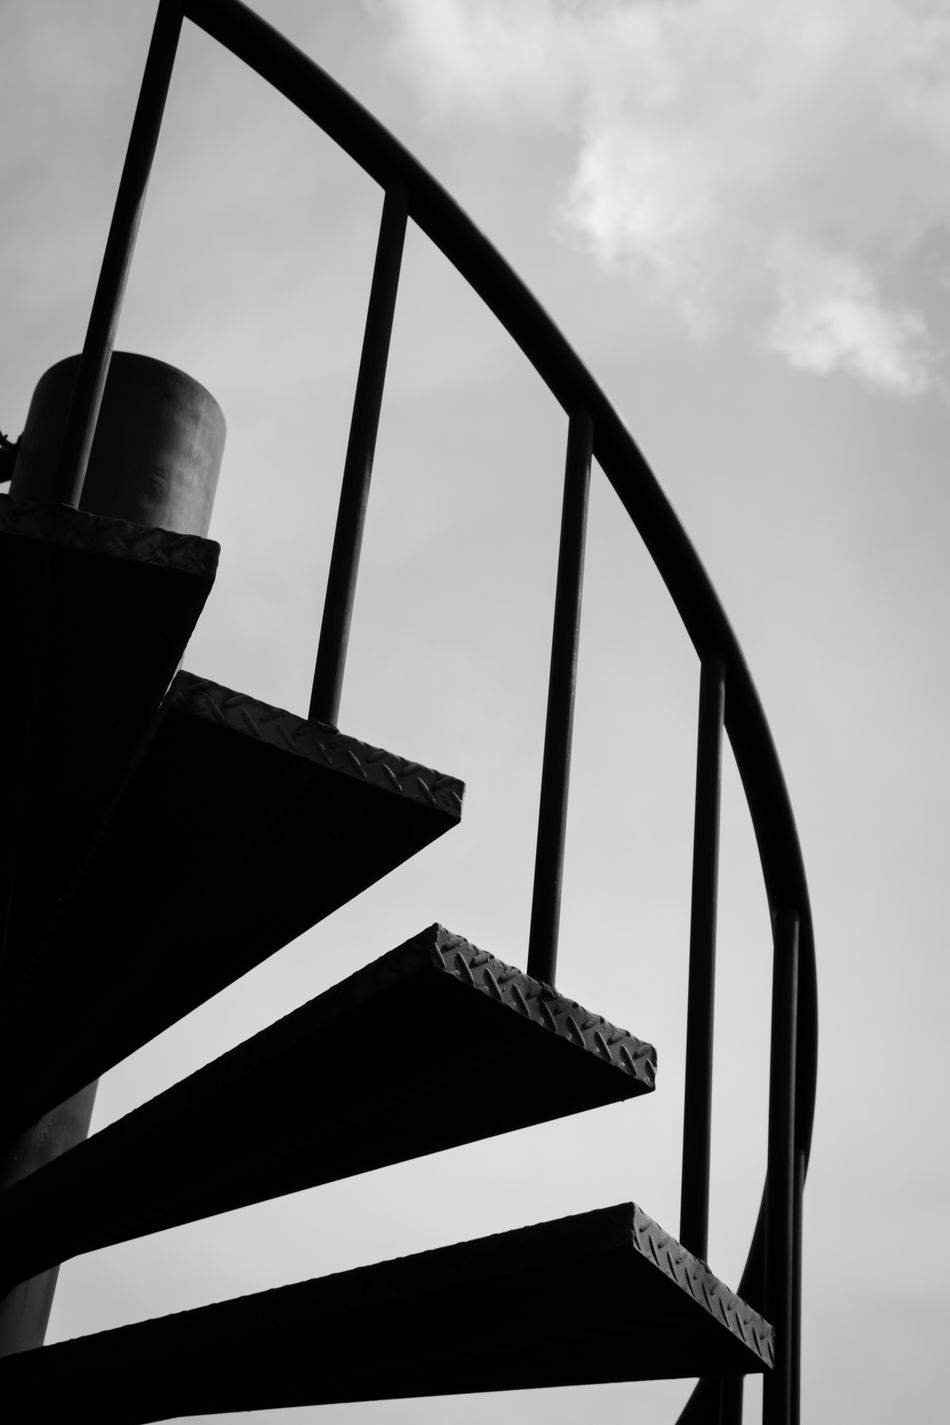 Spiral staircase Low Angle View Architecture Built Structure No People Staircase Building Exterior Outdoors Blackandwhite Blackandwhite Photography Metallic Lines And Shapes Modern Architecture Design Black Structure Railing Ladder Up Silhouette Elegant